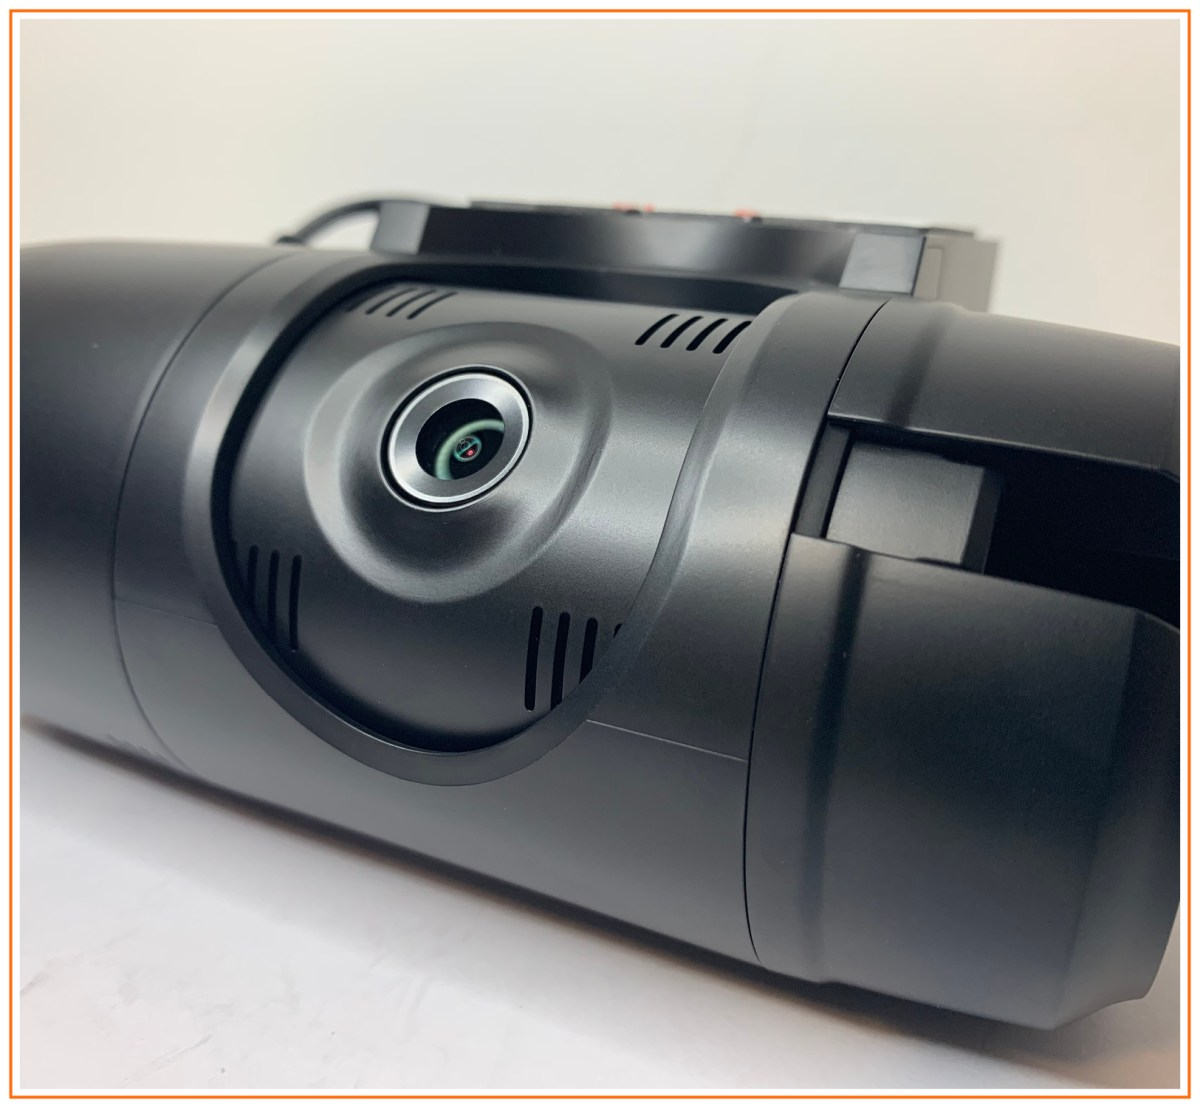 https://i1.wp.com/haultech.co.uk/wp-content/uploads/2019/03/Free-Vehicle-Tracking-with-Every-Connected-Dash-Cam.jpg?fit=1200%2C1108&ssl=1